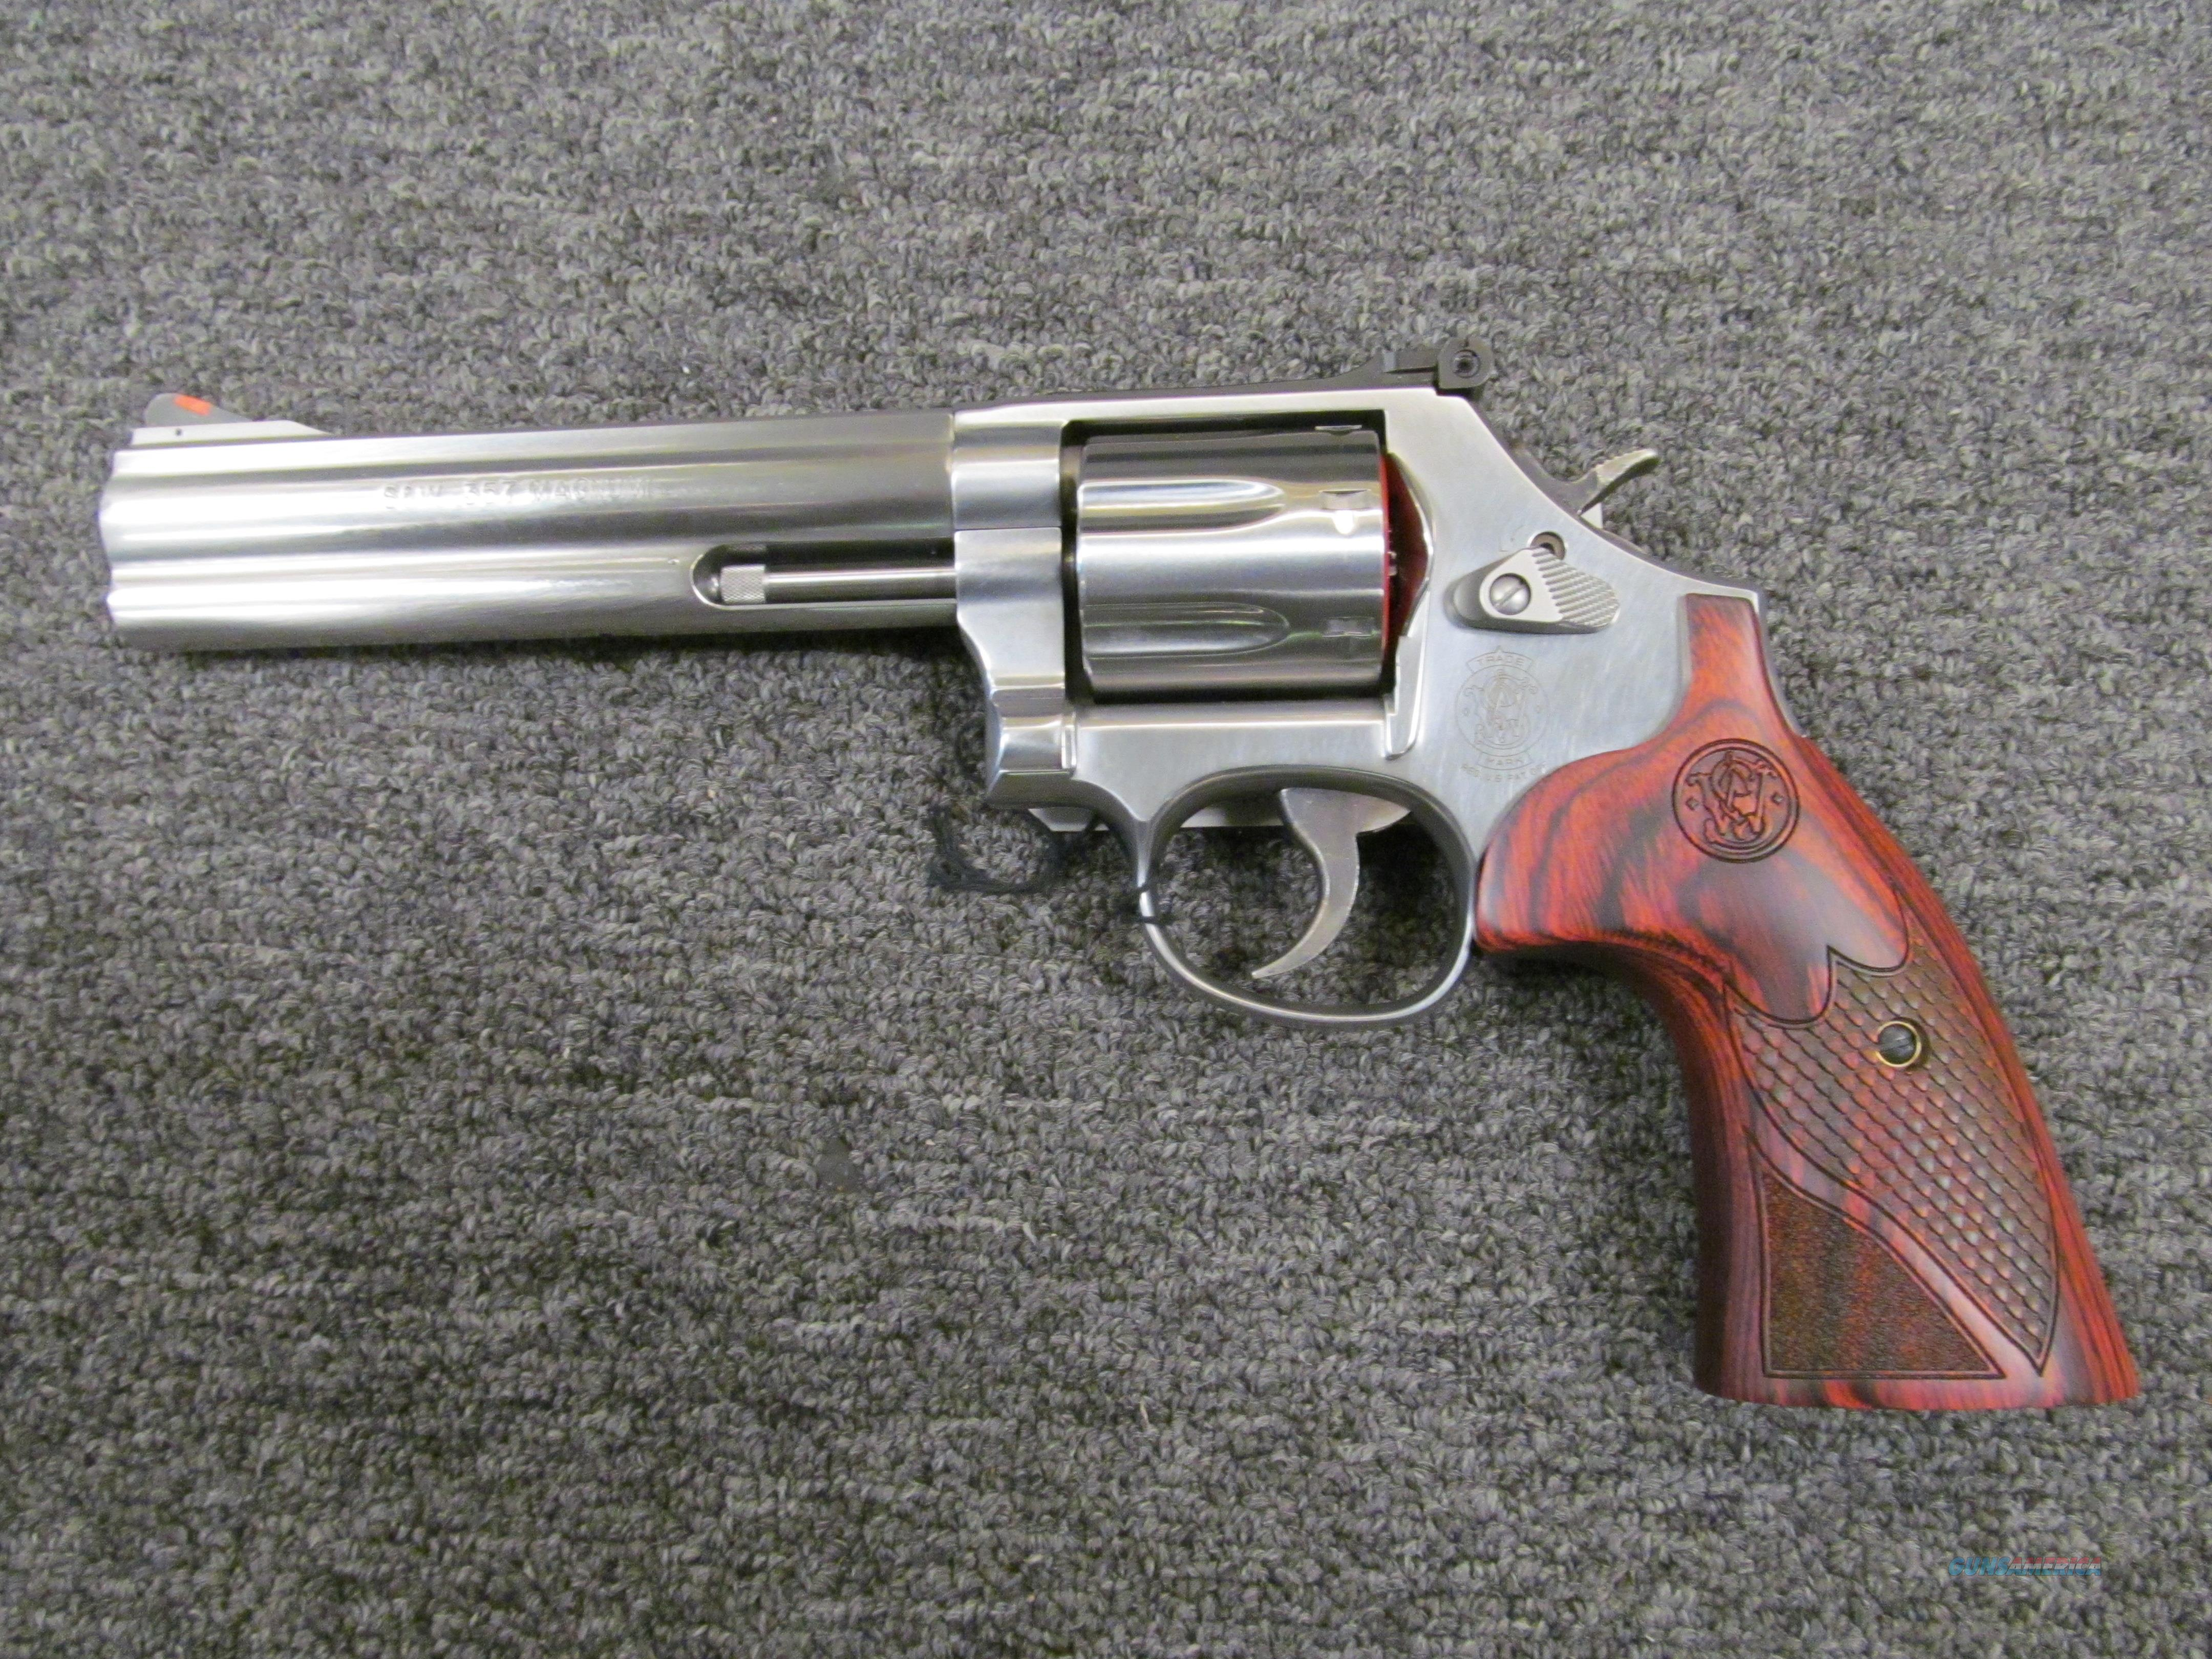 Smith & Wesson 686-6 Plus Deluxe (150712)  Guns > Pistols > Smith & Wesson Revolvers > Med. Frame ( K/L )